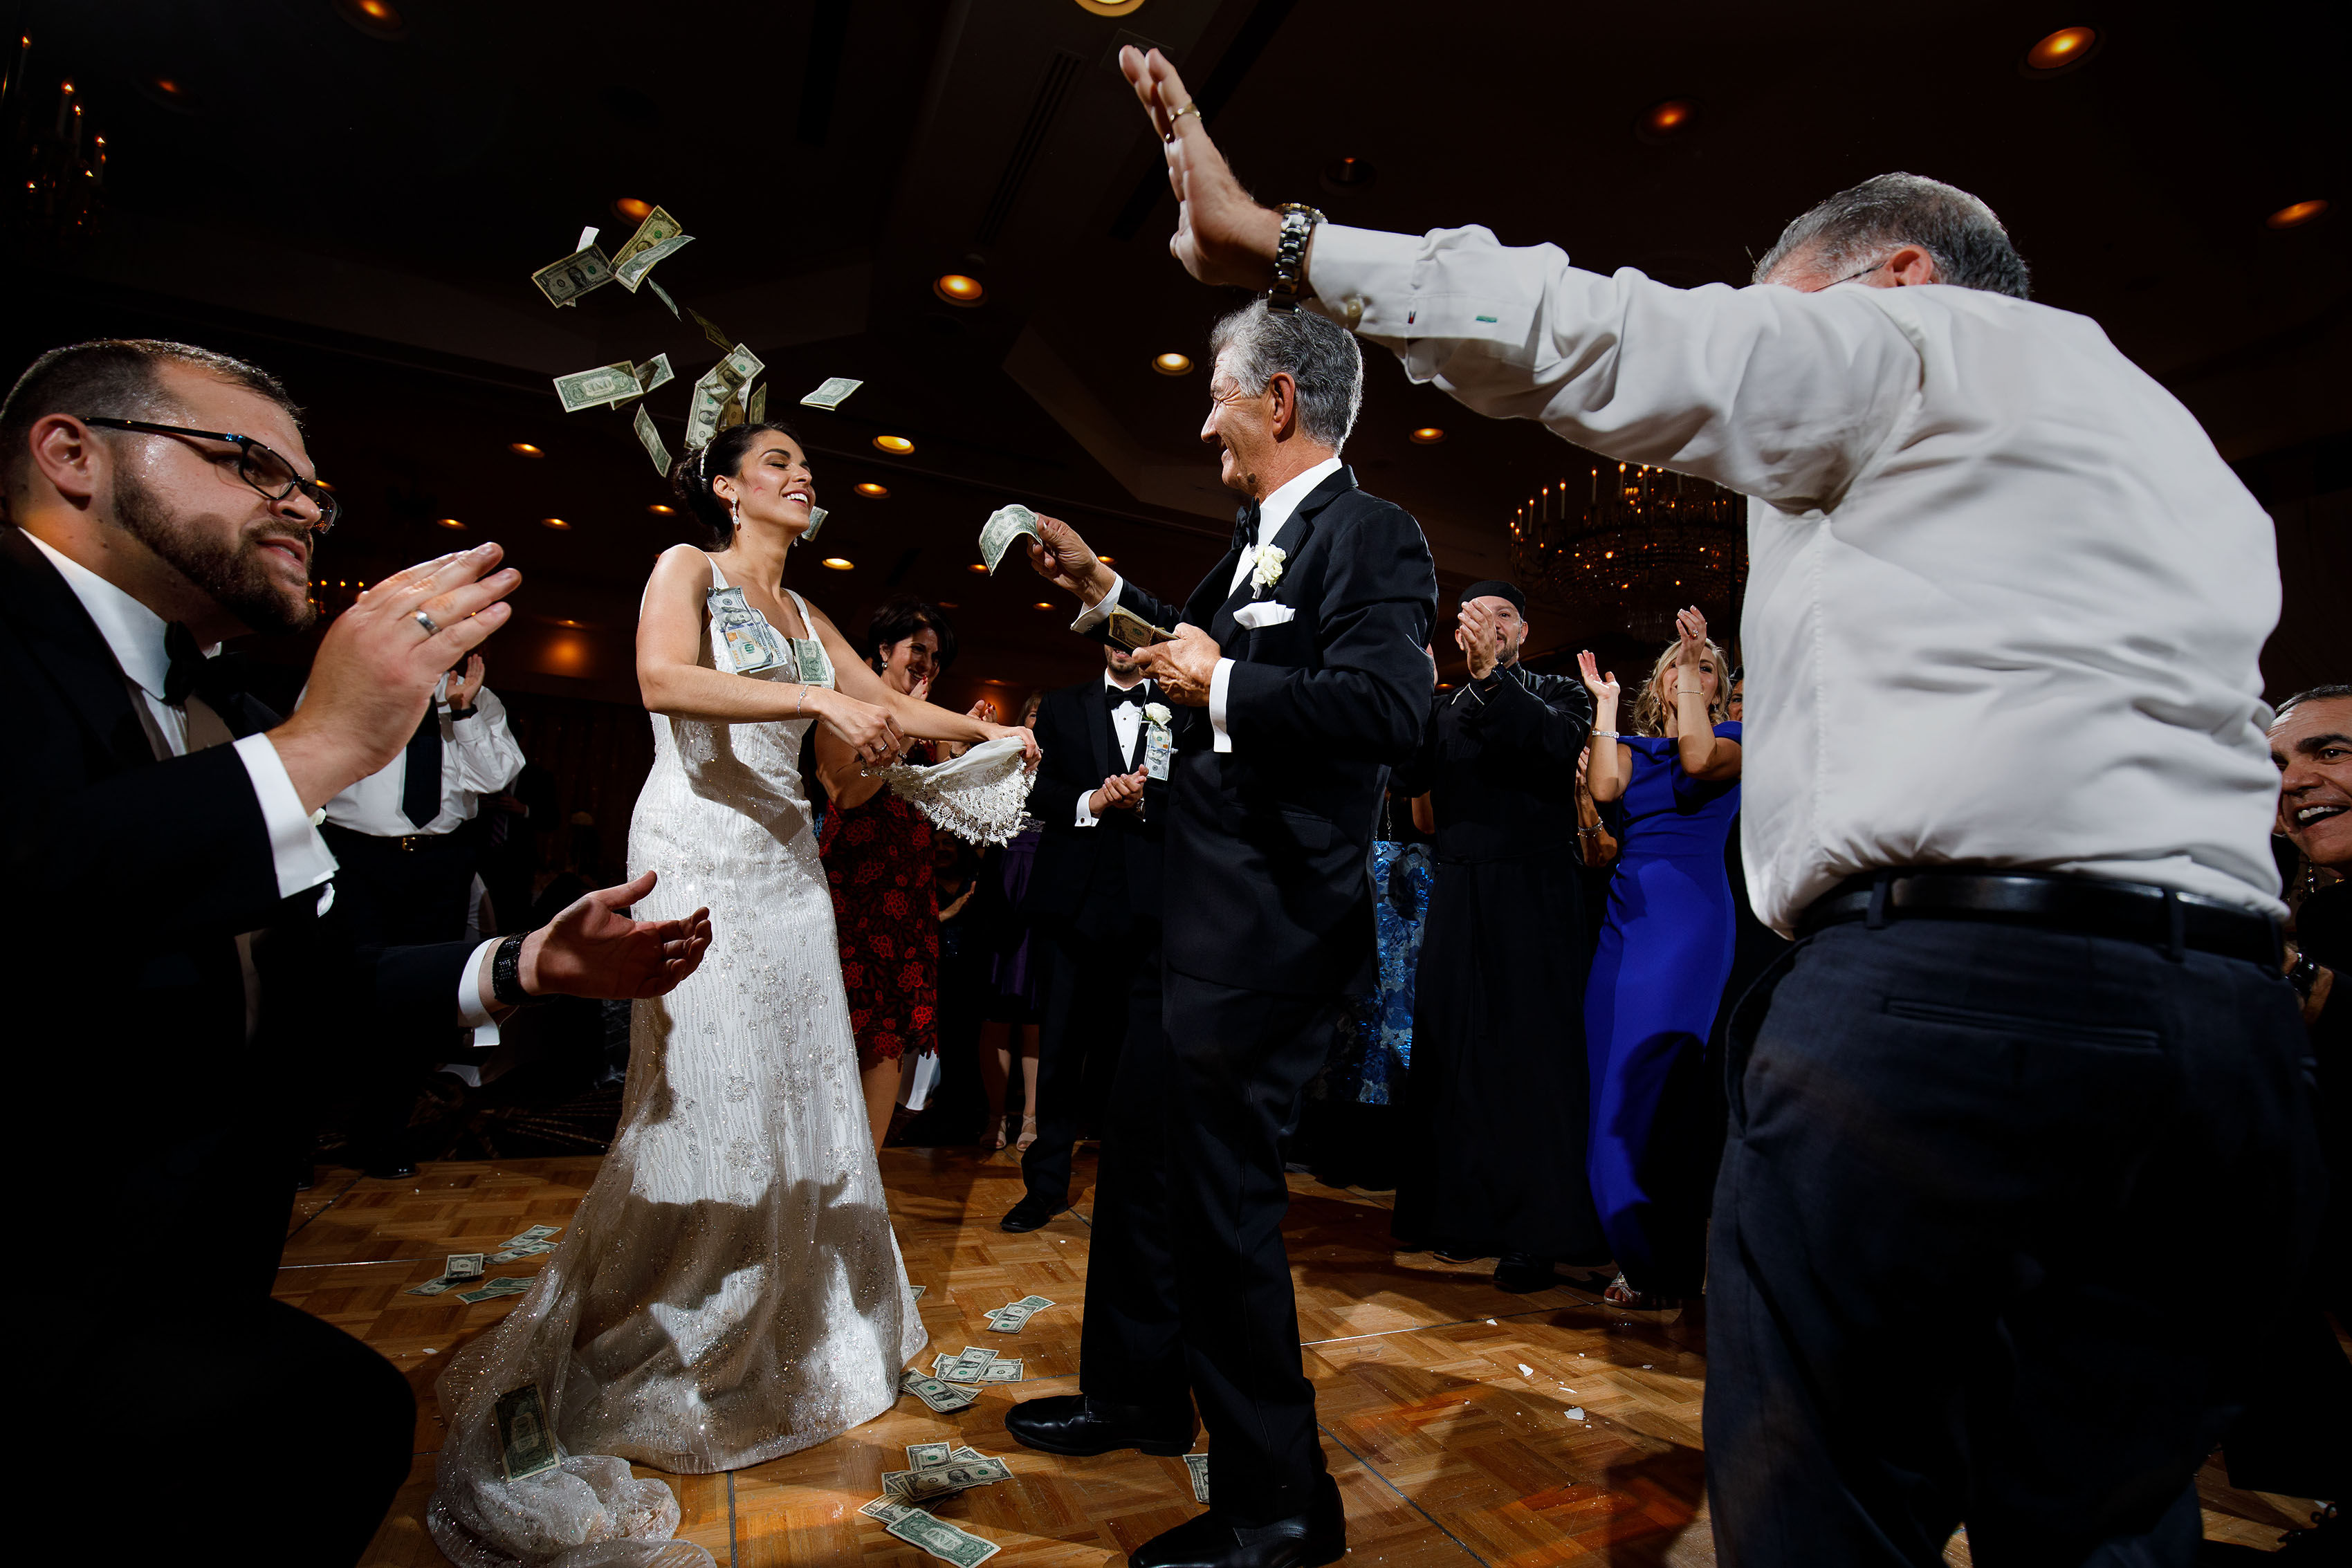 The father of the bride makes it rain dollar bills on the dance floor